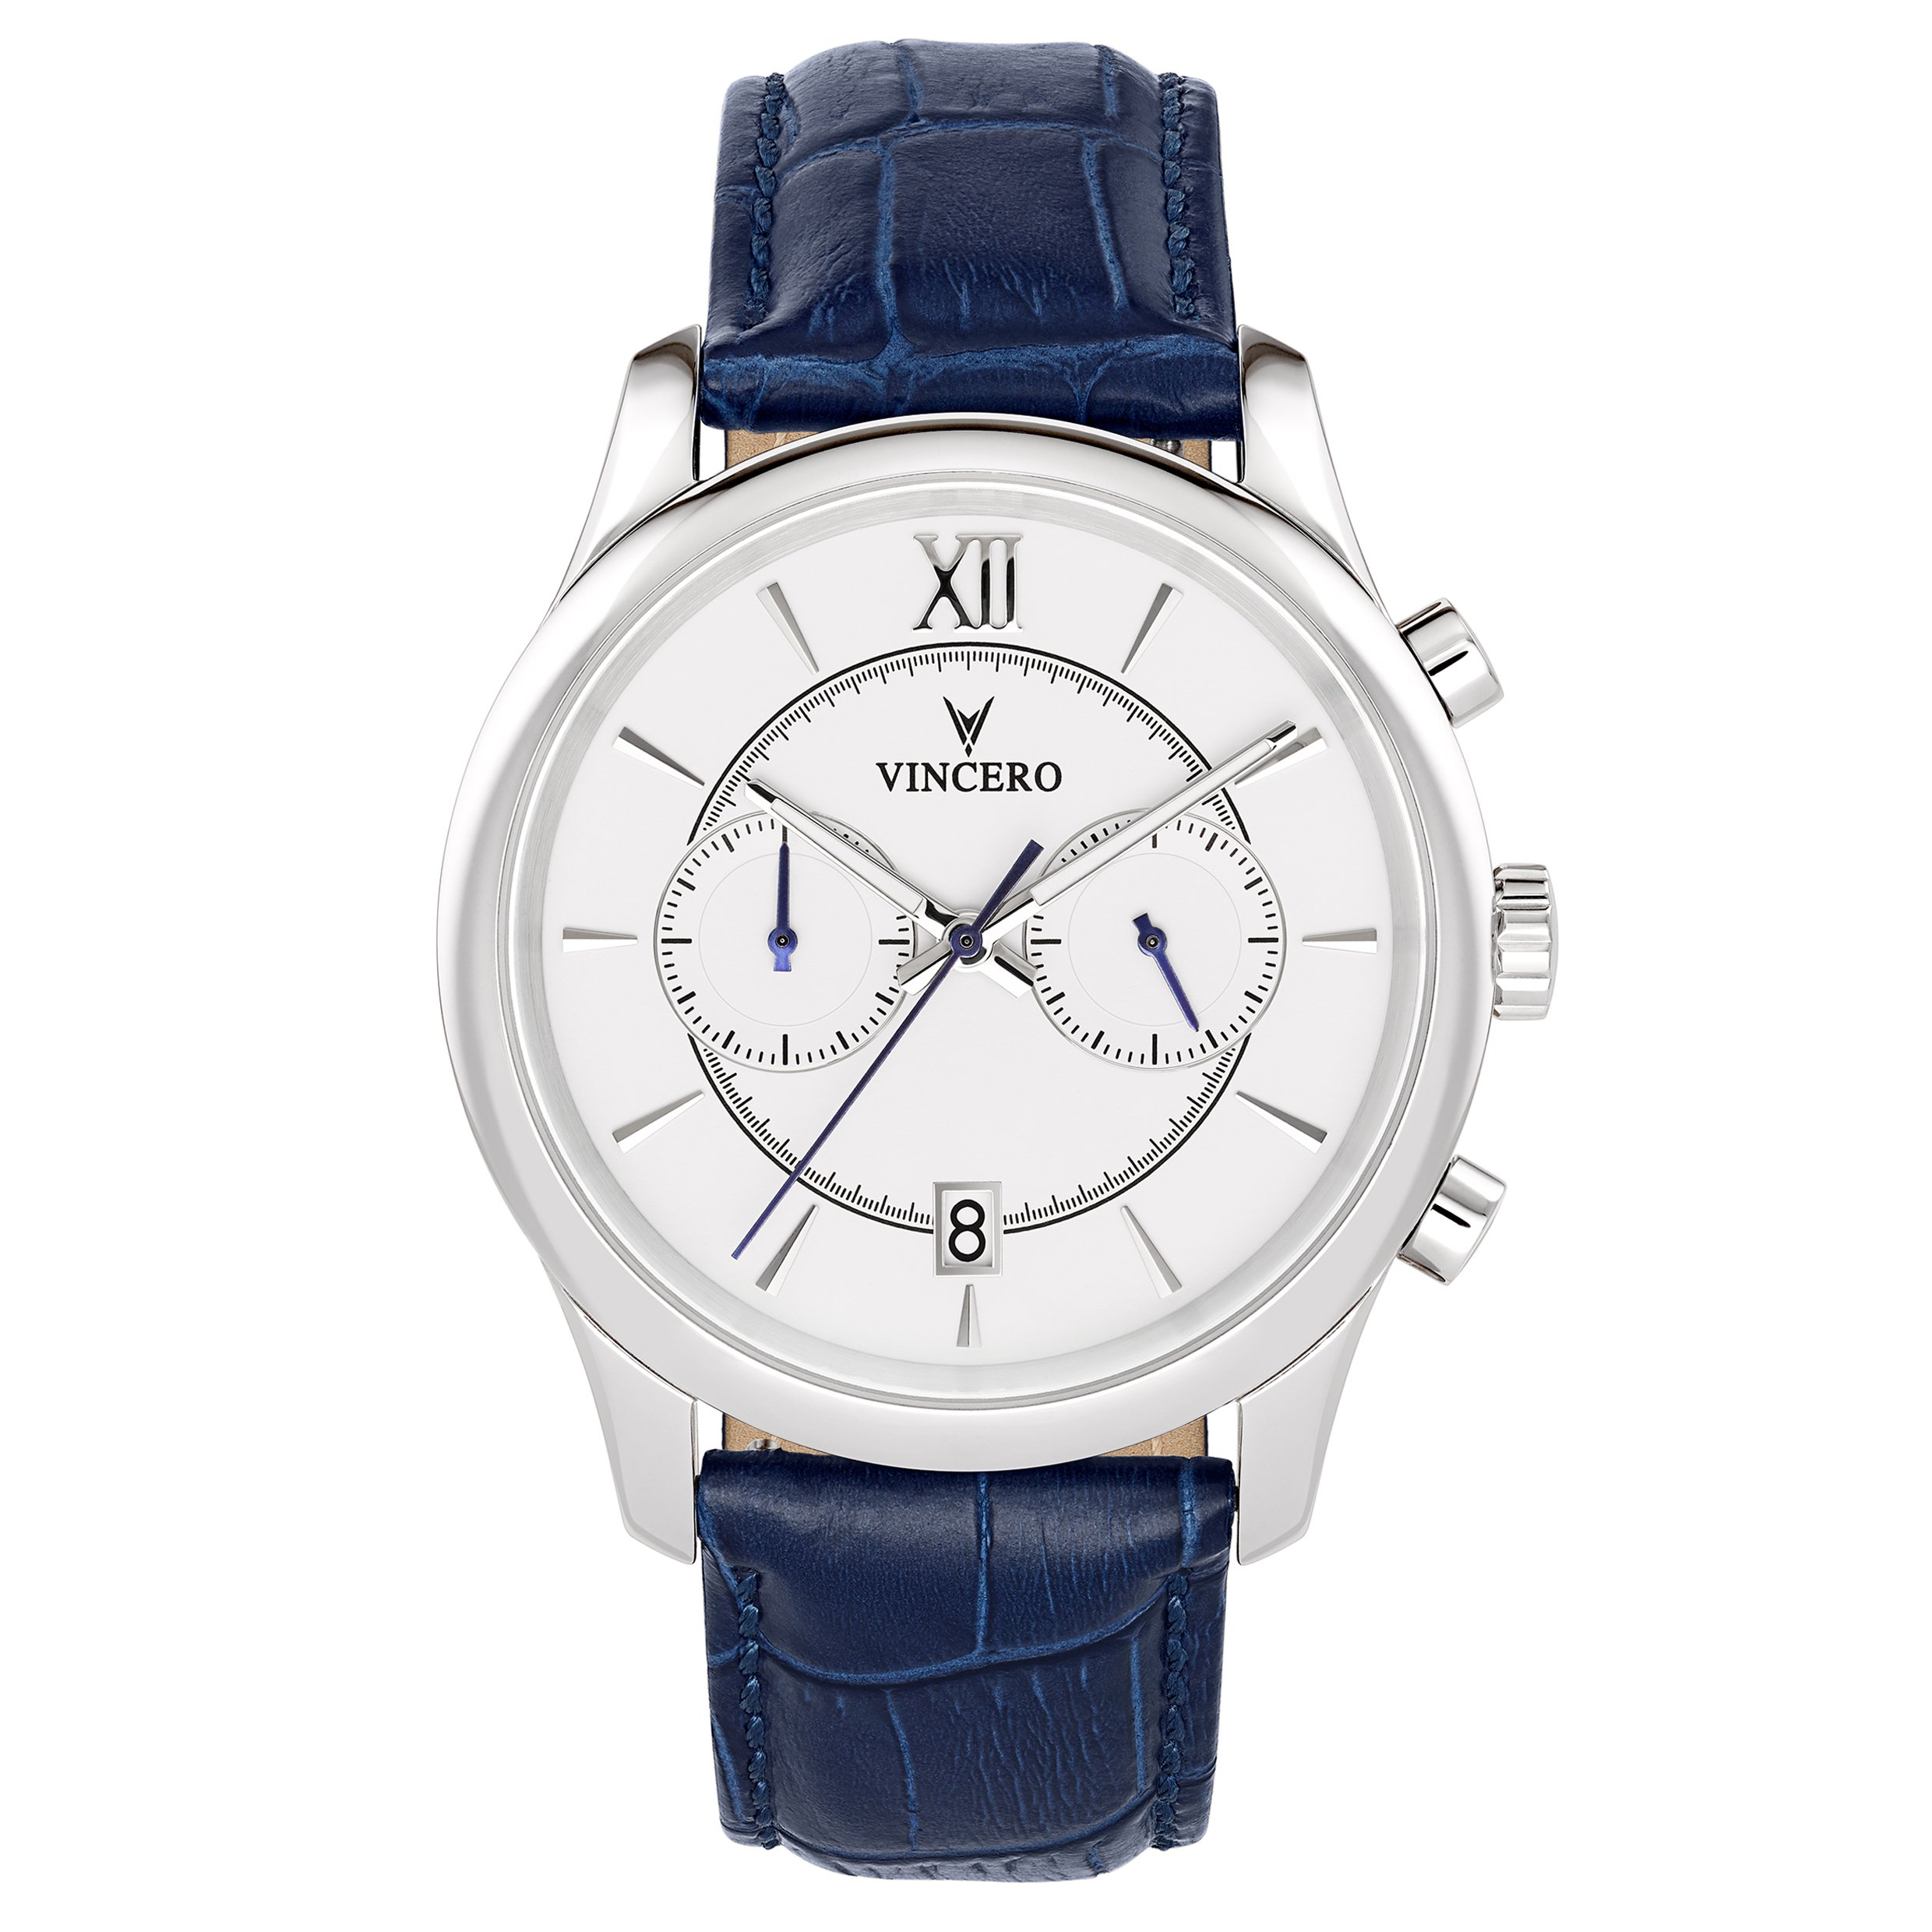 Vincero Men's Bellwether White & Silver Chronograph Watch with Leather Band